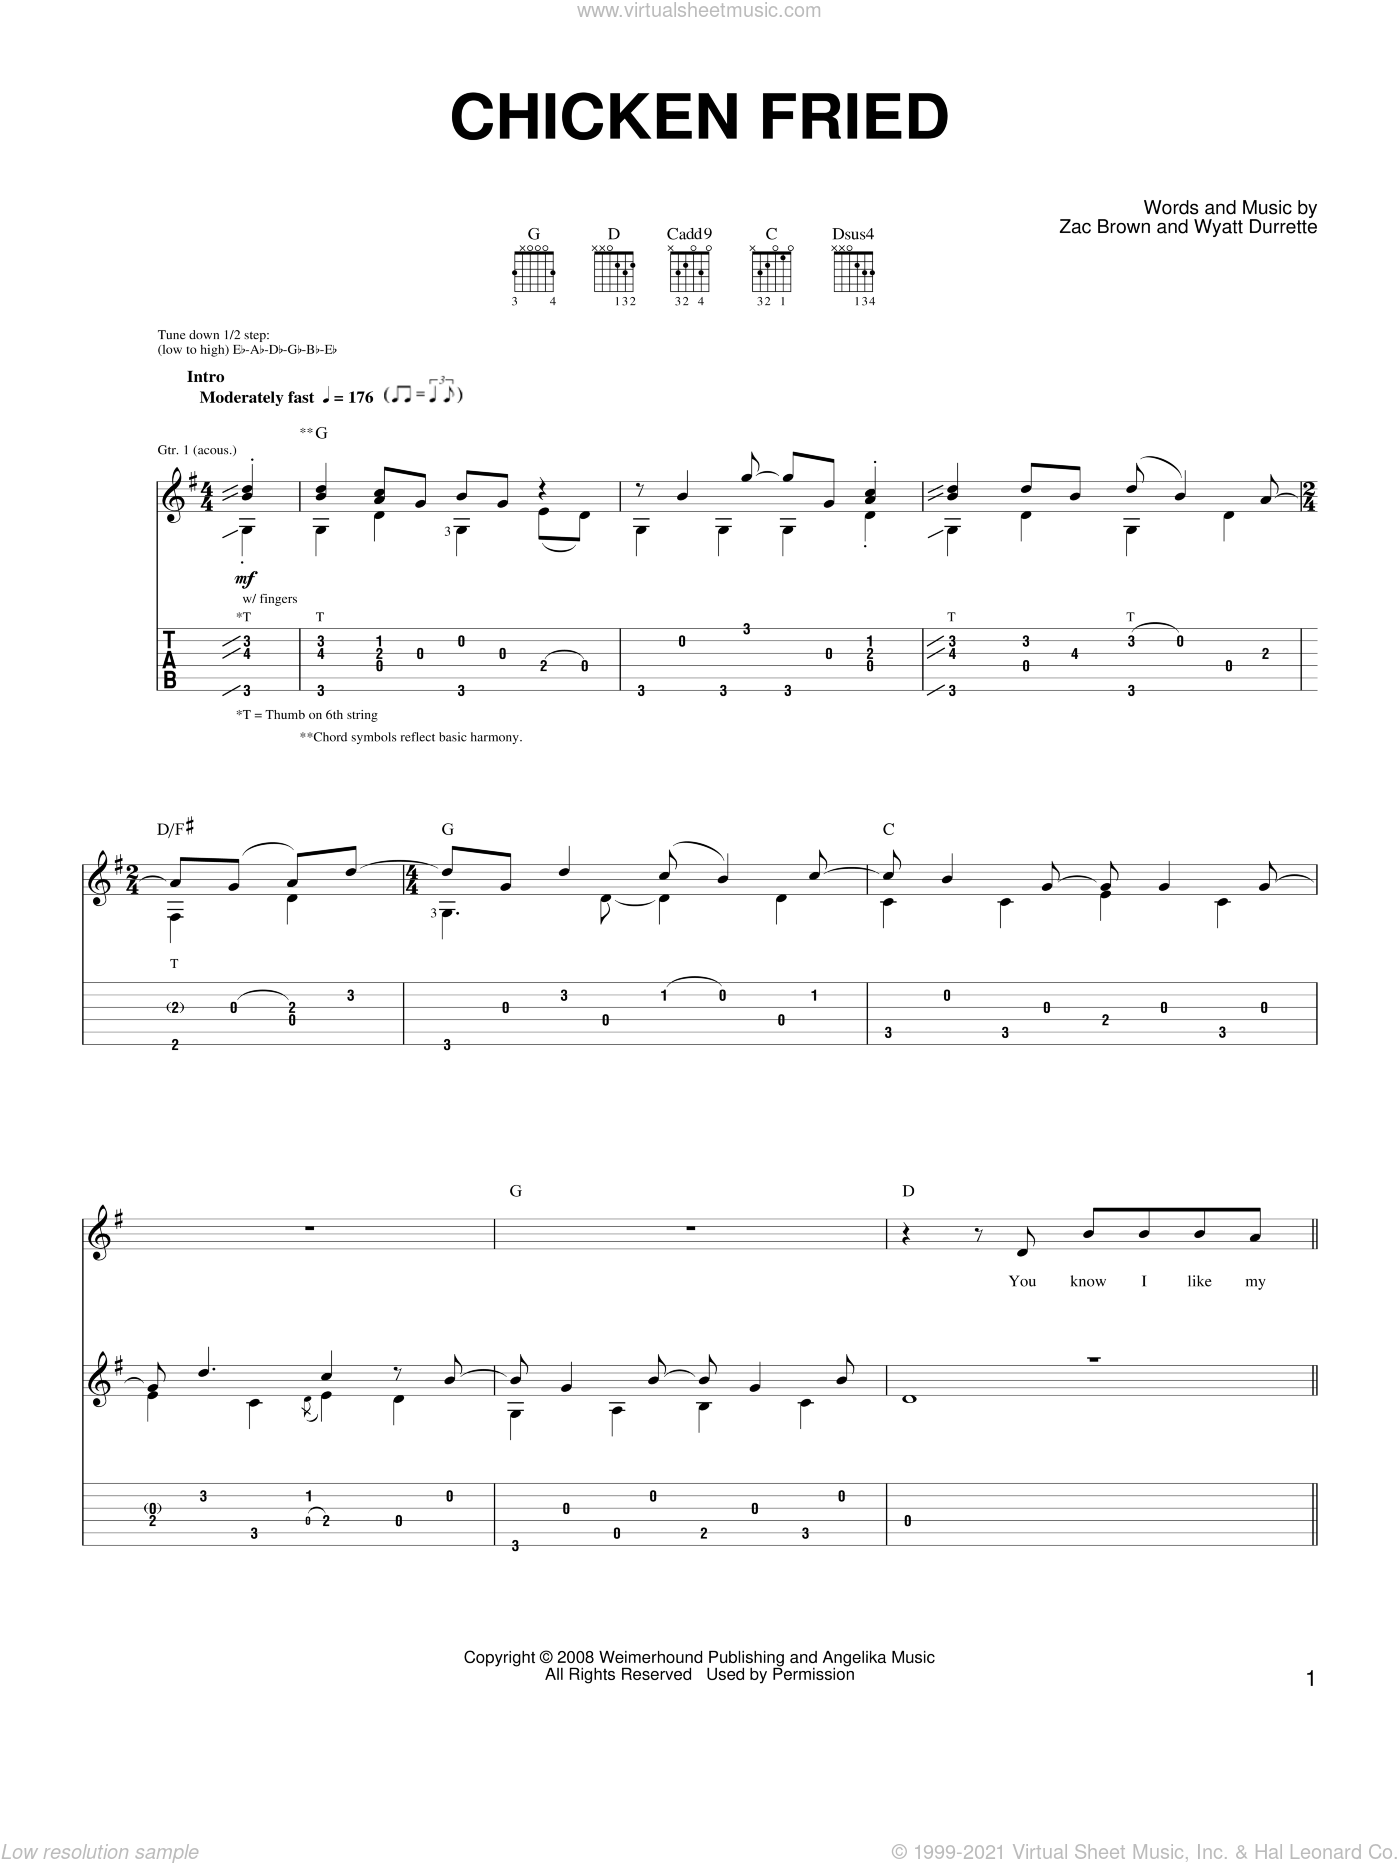 Chicken Fried sheet music for guitar solo (chords) by Zac Brown